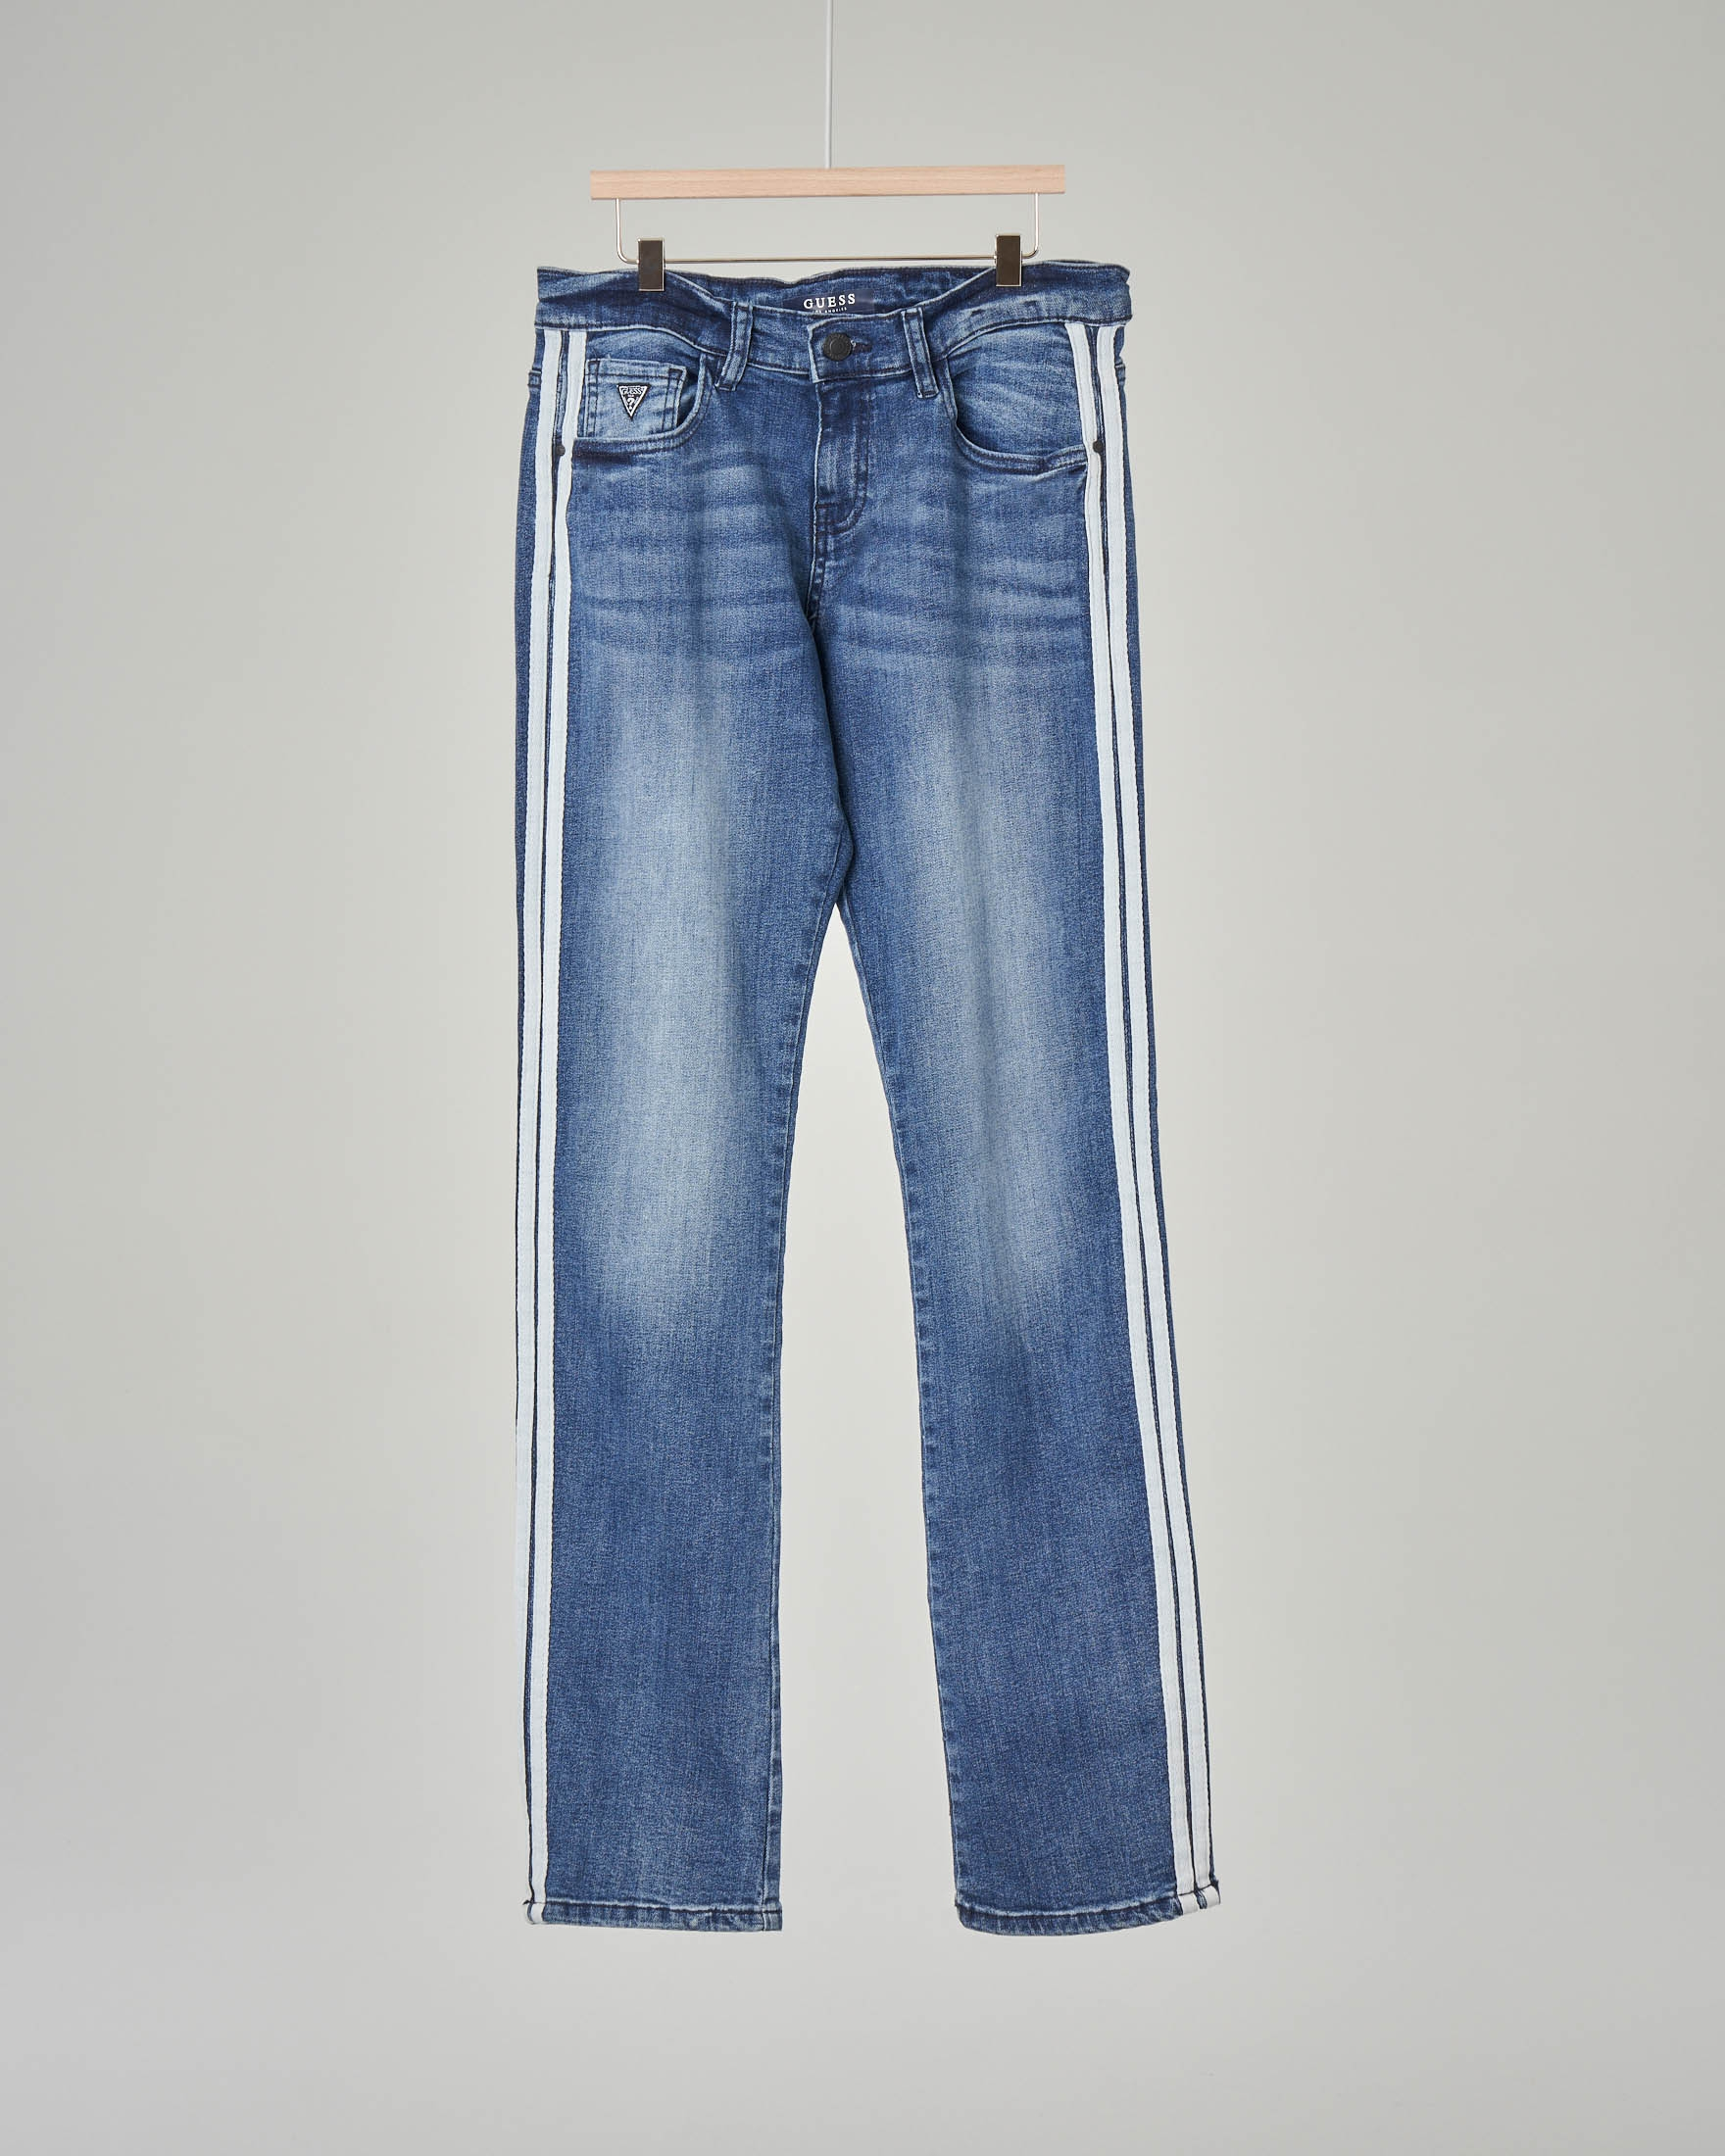 Jeans con sbiancature e bande bianche